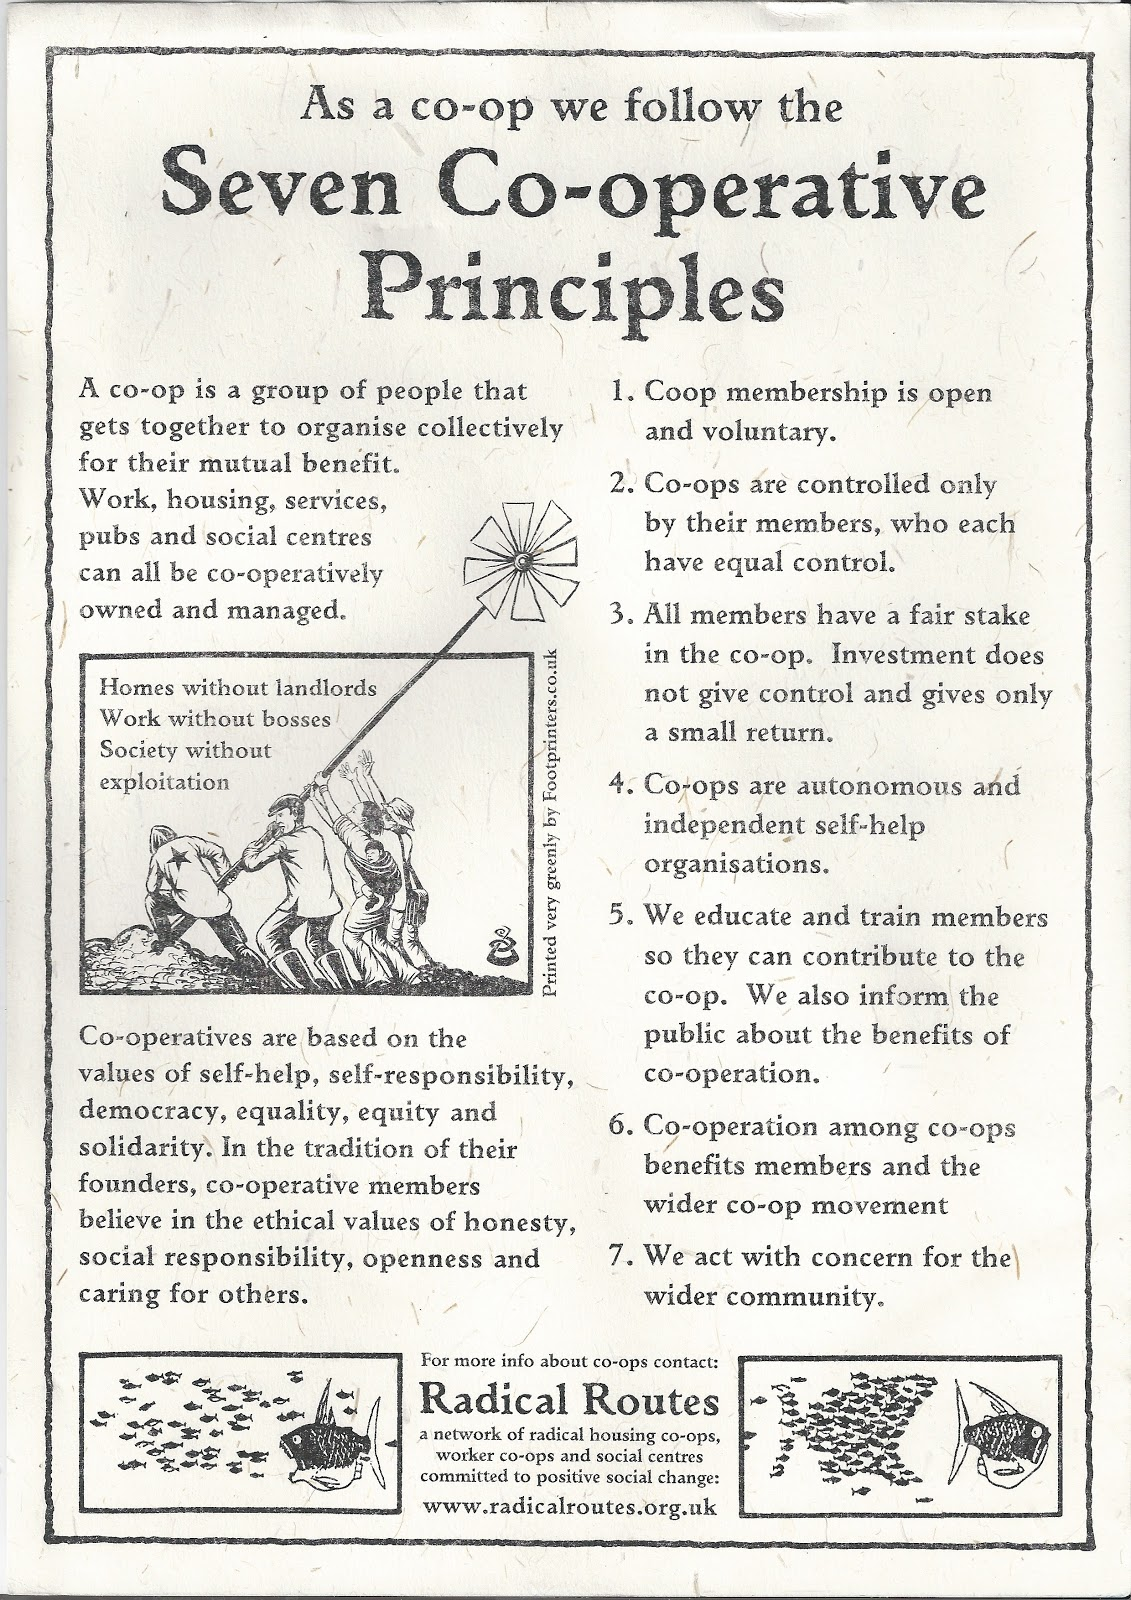 Co-operative principles